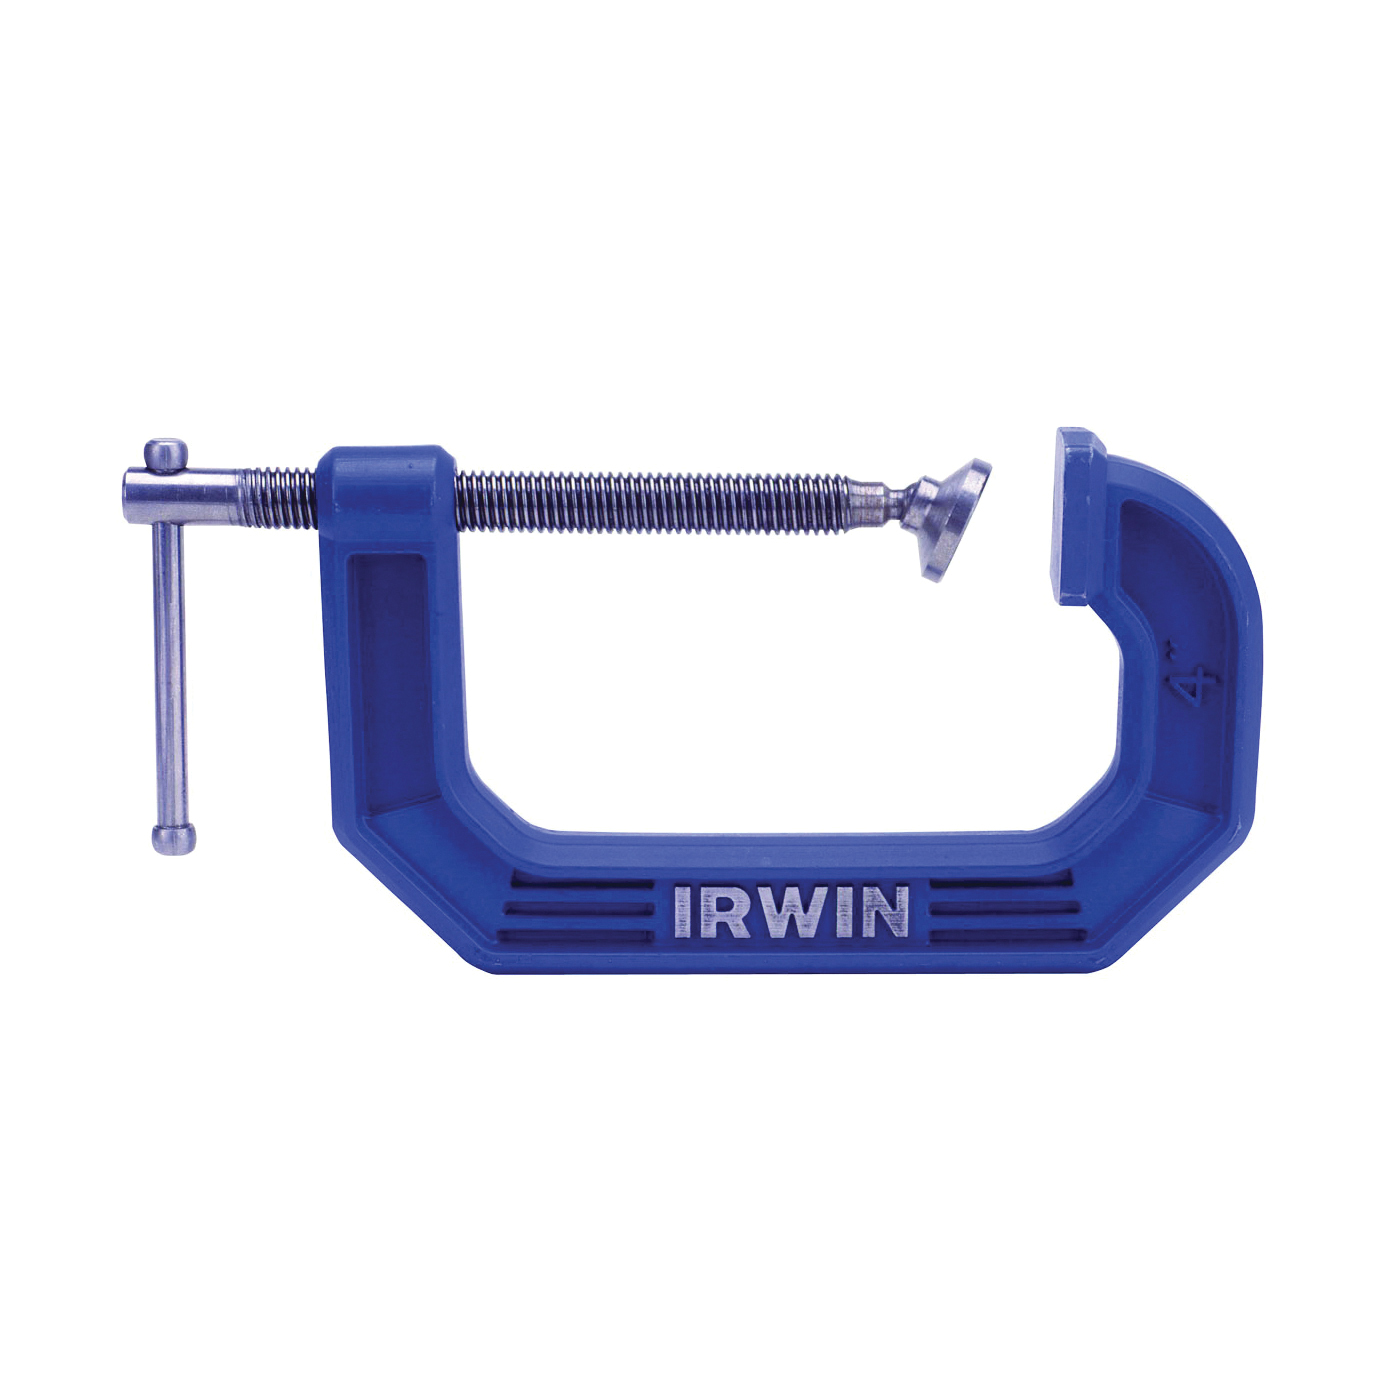 Picture of IRWIN 2025102 C-Clamp, 10 lb Clamping, 2-1/2 in Max Opening Size, 1-3/8 in D Throat, Steel Body, Blue Body